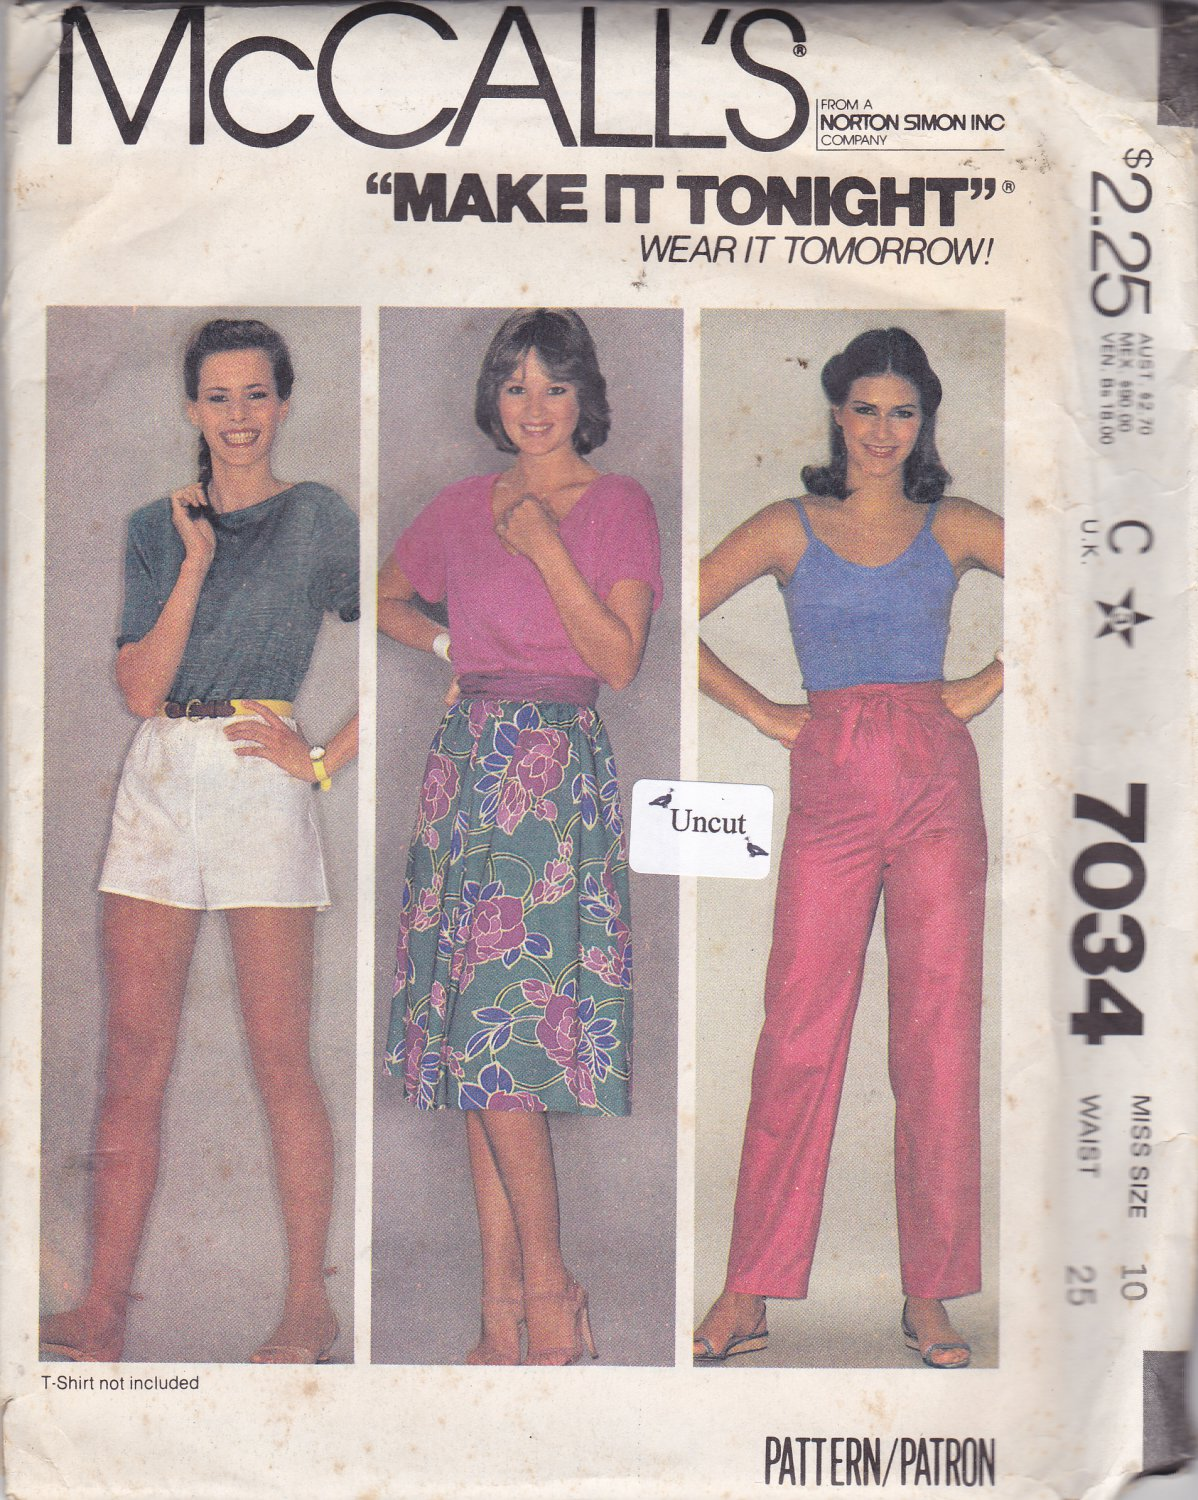 McCall's 7034 Uncut size 10 Waist 25 Flared Midi Skirt Pull On Pants Shorts Tie Belt